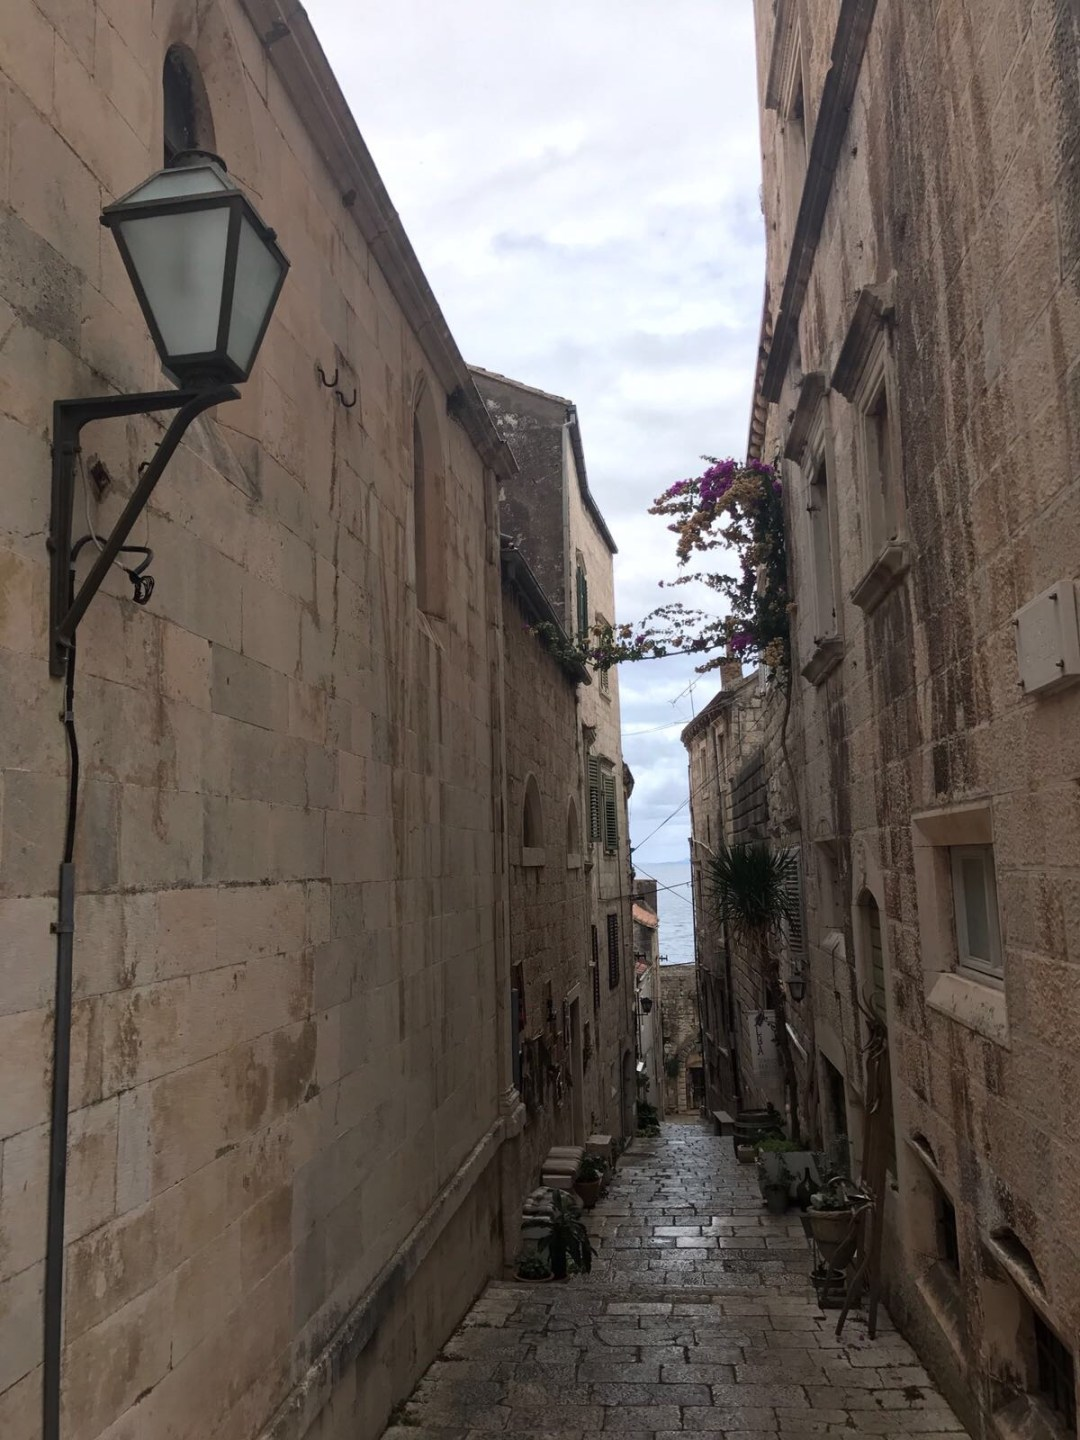 Narrow streets in Korcula's Old Town, Croatia